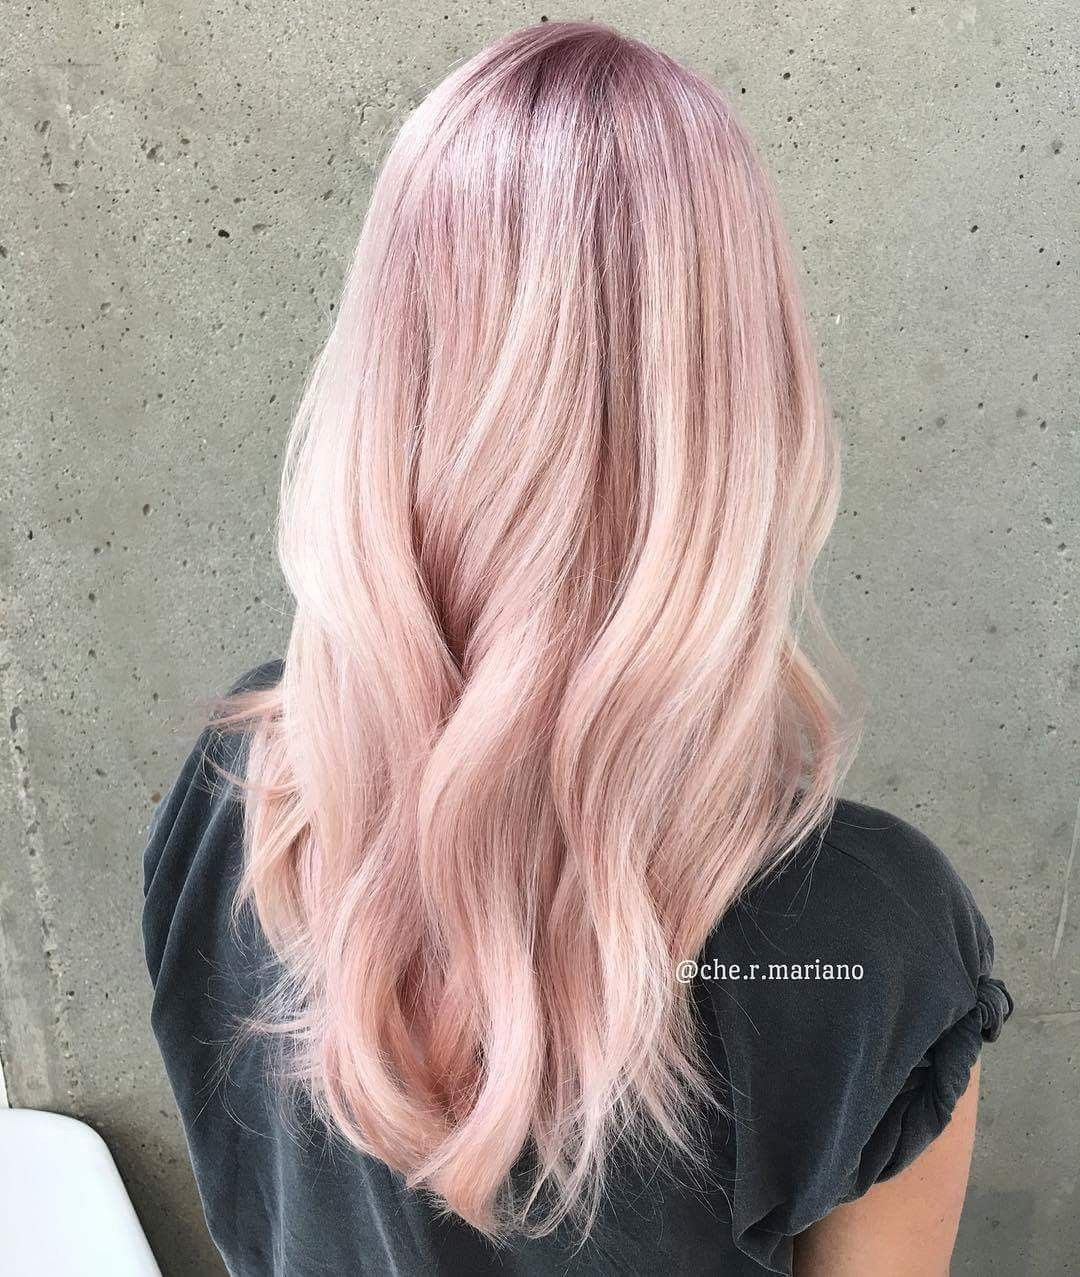 Pin By Mov On Wlosy Light Pink Hair Pink Blonde Hair Hair Color Pastel